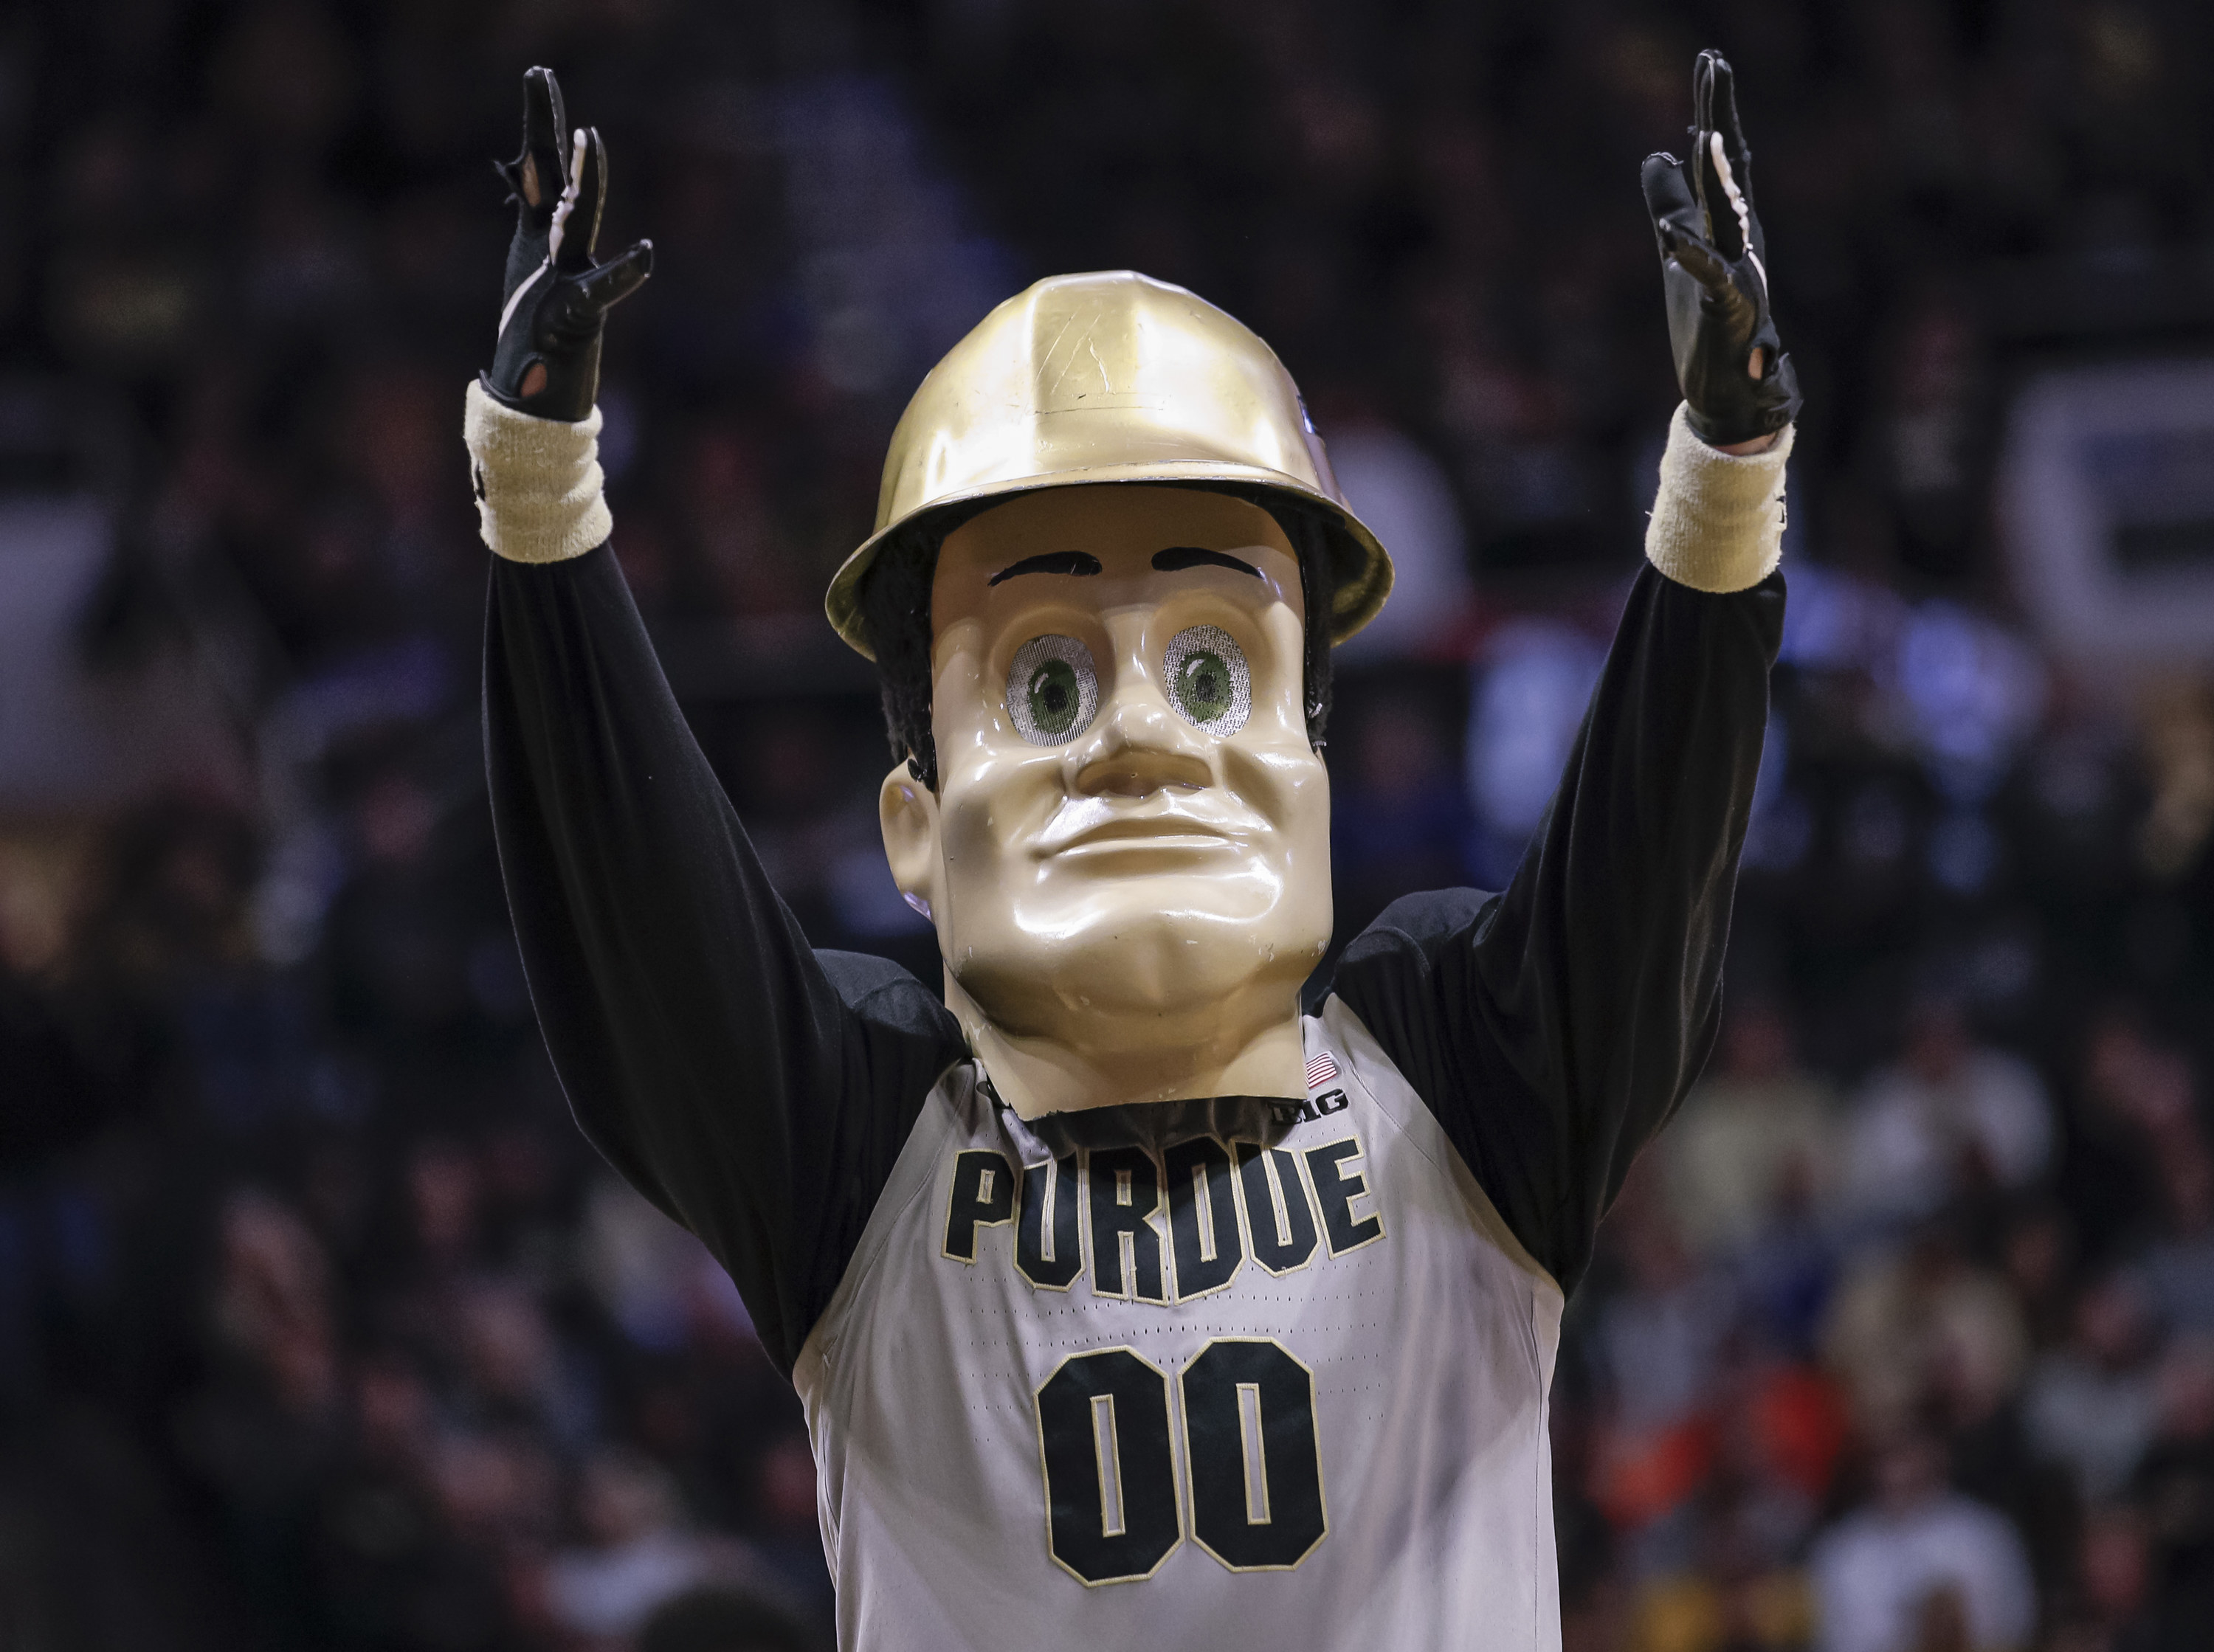 Plastic-faced mascot wearing a bronze hard hat and Purdue jersey.